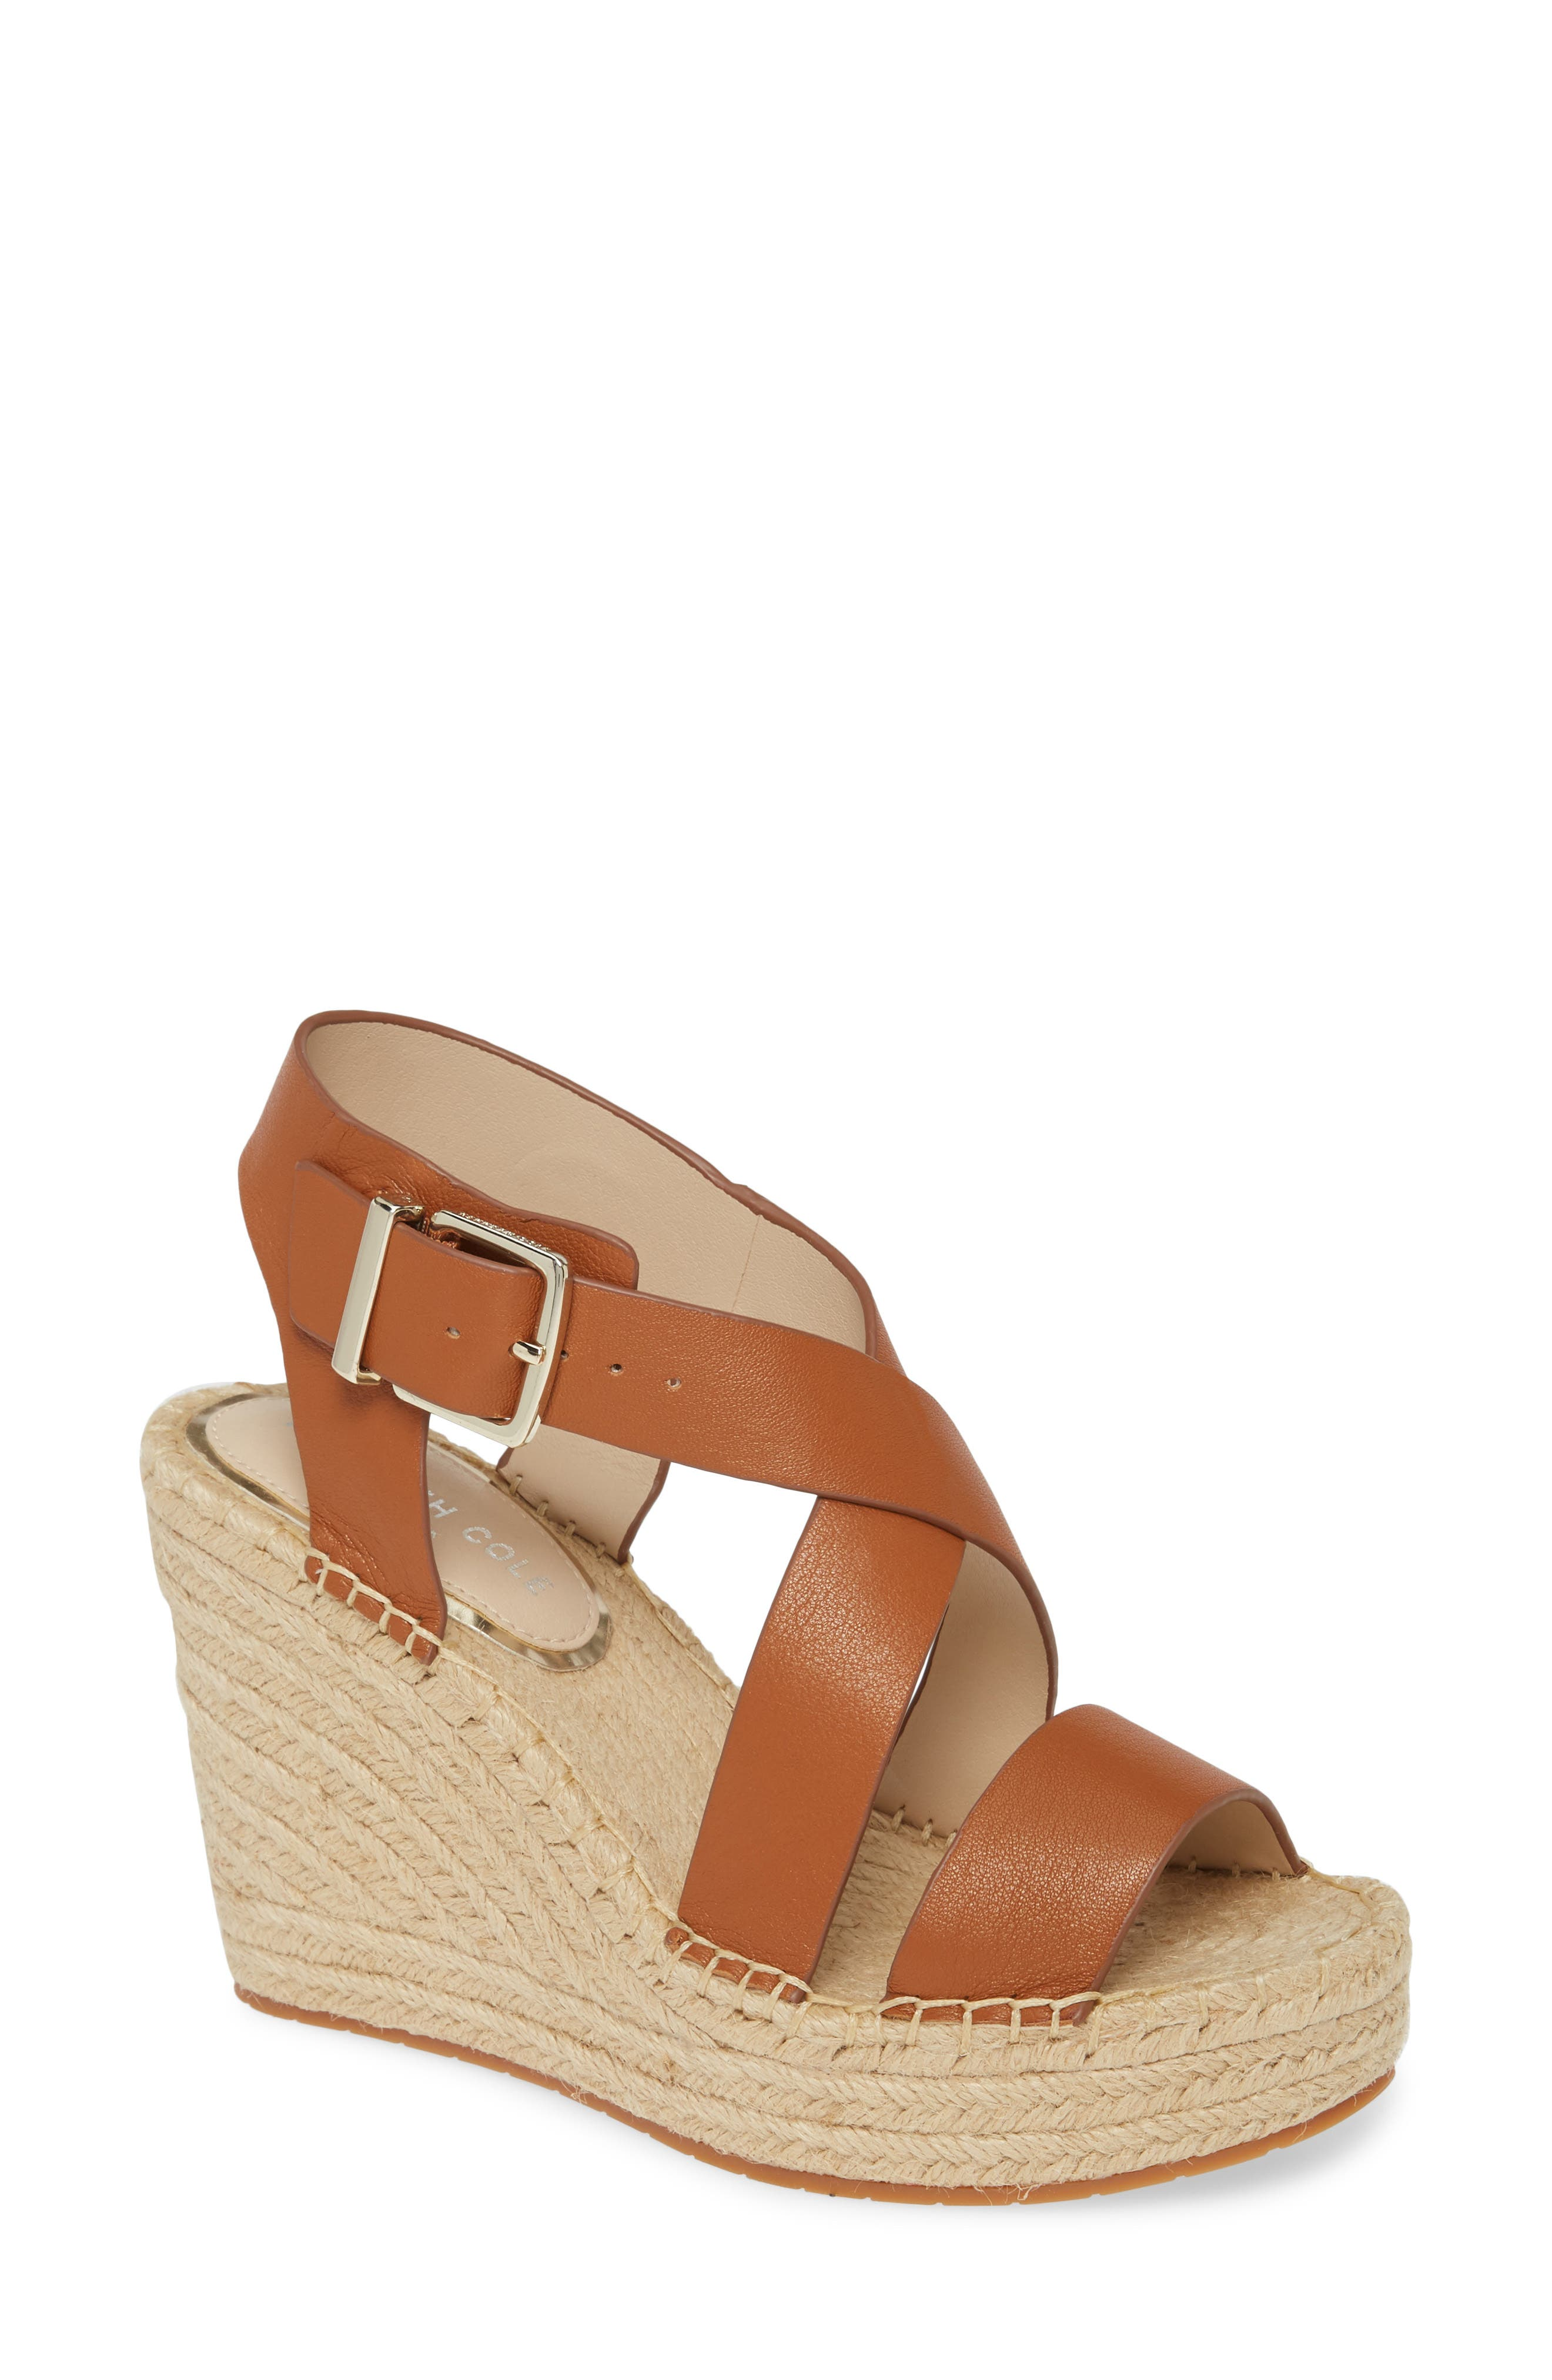 An espadrille-inspired platform sole provides a lofty foundation for this breezy cross-strap sandal. Style Name: Kenneth Cole New York Olivia Espadrille Wedge Platform Sandal (Women). Style Number: 5995736 1. Available in stores.